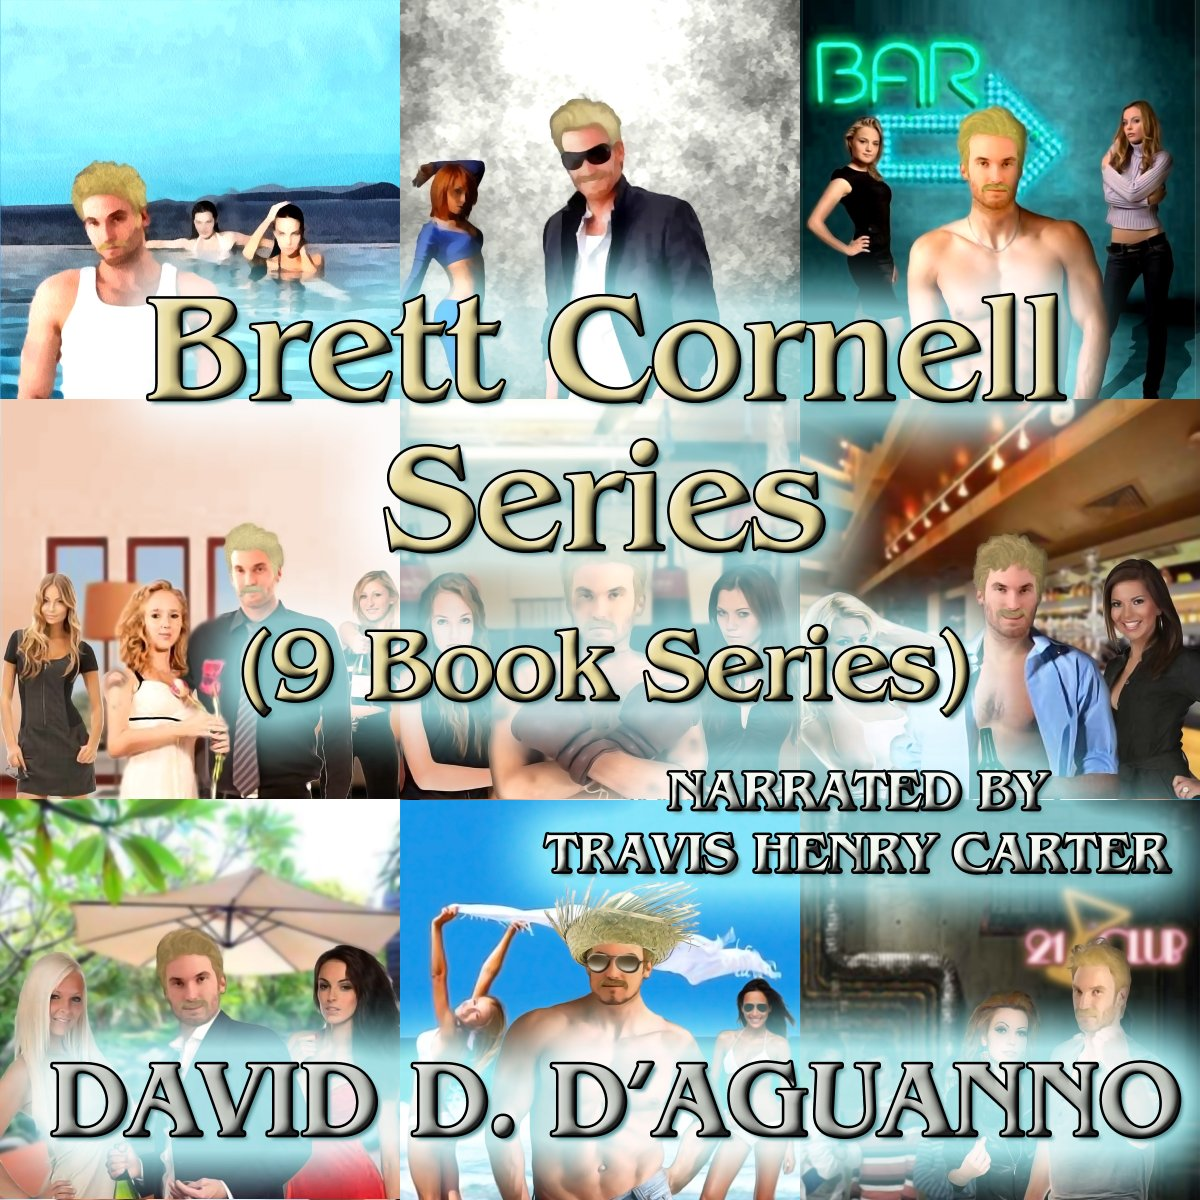 """Girl: Can you name 5 Shakespeare plays? Brett: Sure, there's """"Hamlet"""" - """"Pinocchio"""" - """"Star Wars"""" - That makes 5, don't it?  Complete Brett #comedy #mystery series - very educational** - 68+hours - #audiobook bundle  https://tinyurl.com/y9orvnst   **a matter of opinion, that ispic.twitter.com/vb4QryqFaI"""